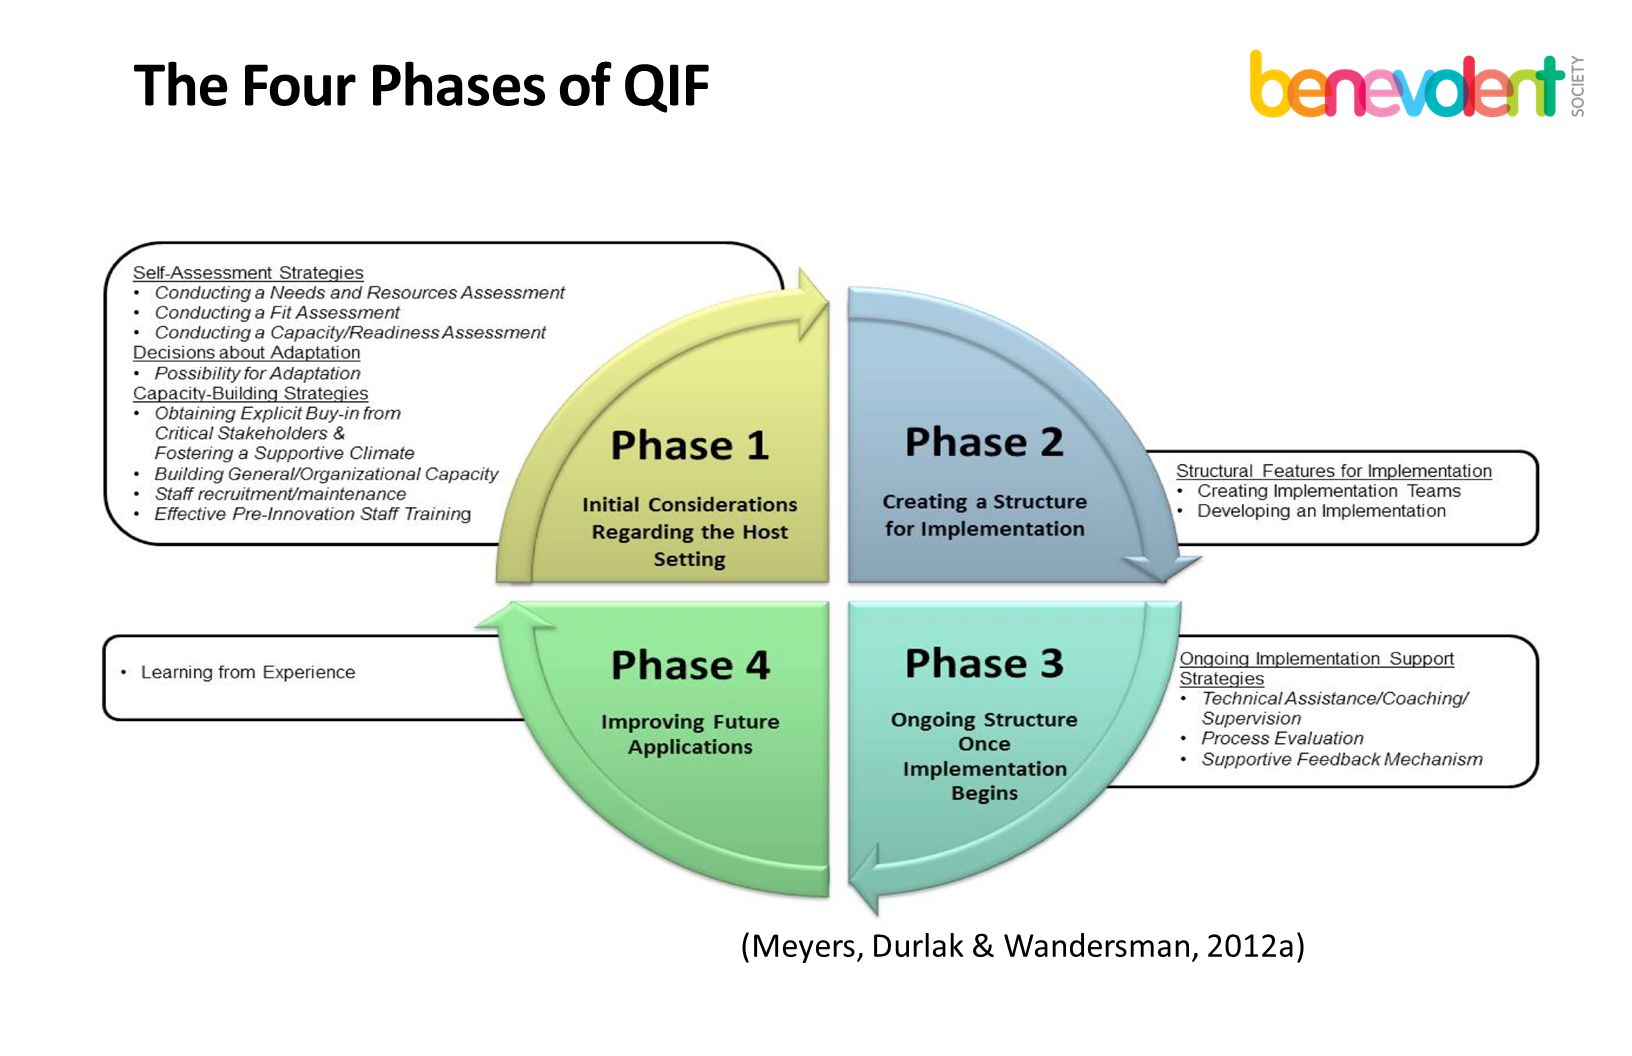 The Four Phases of QIF (Meyers, Durlak & Wandersman, 2012a)